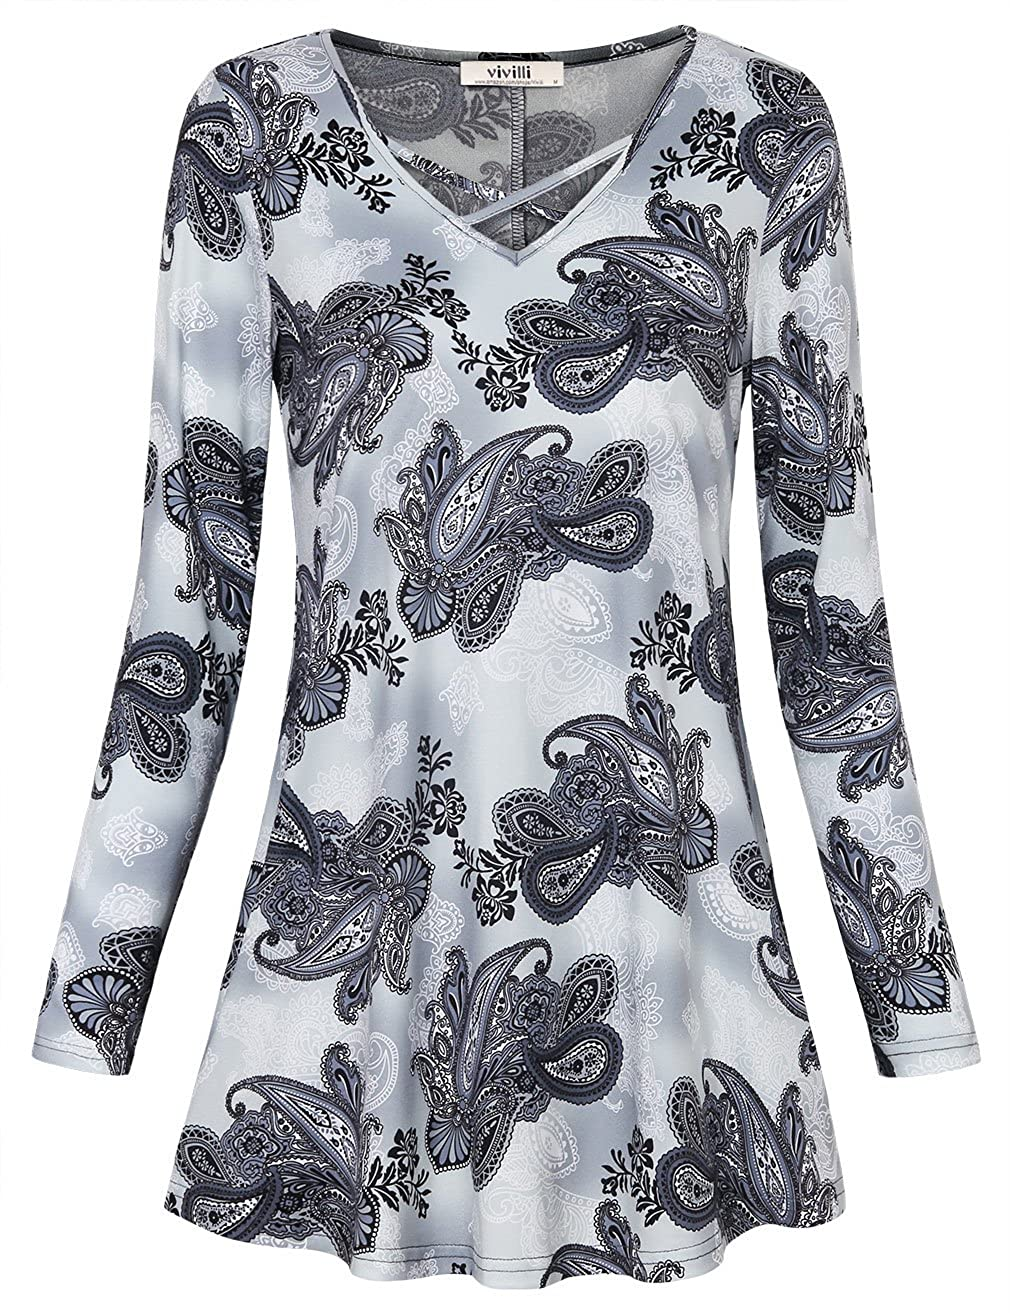 a4a3c2aafde Top 10 wholesale Dressy 3 4 Sleeve Blouses - Chinabrands.com